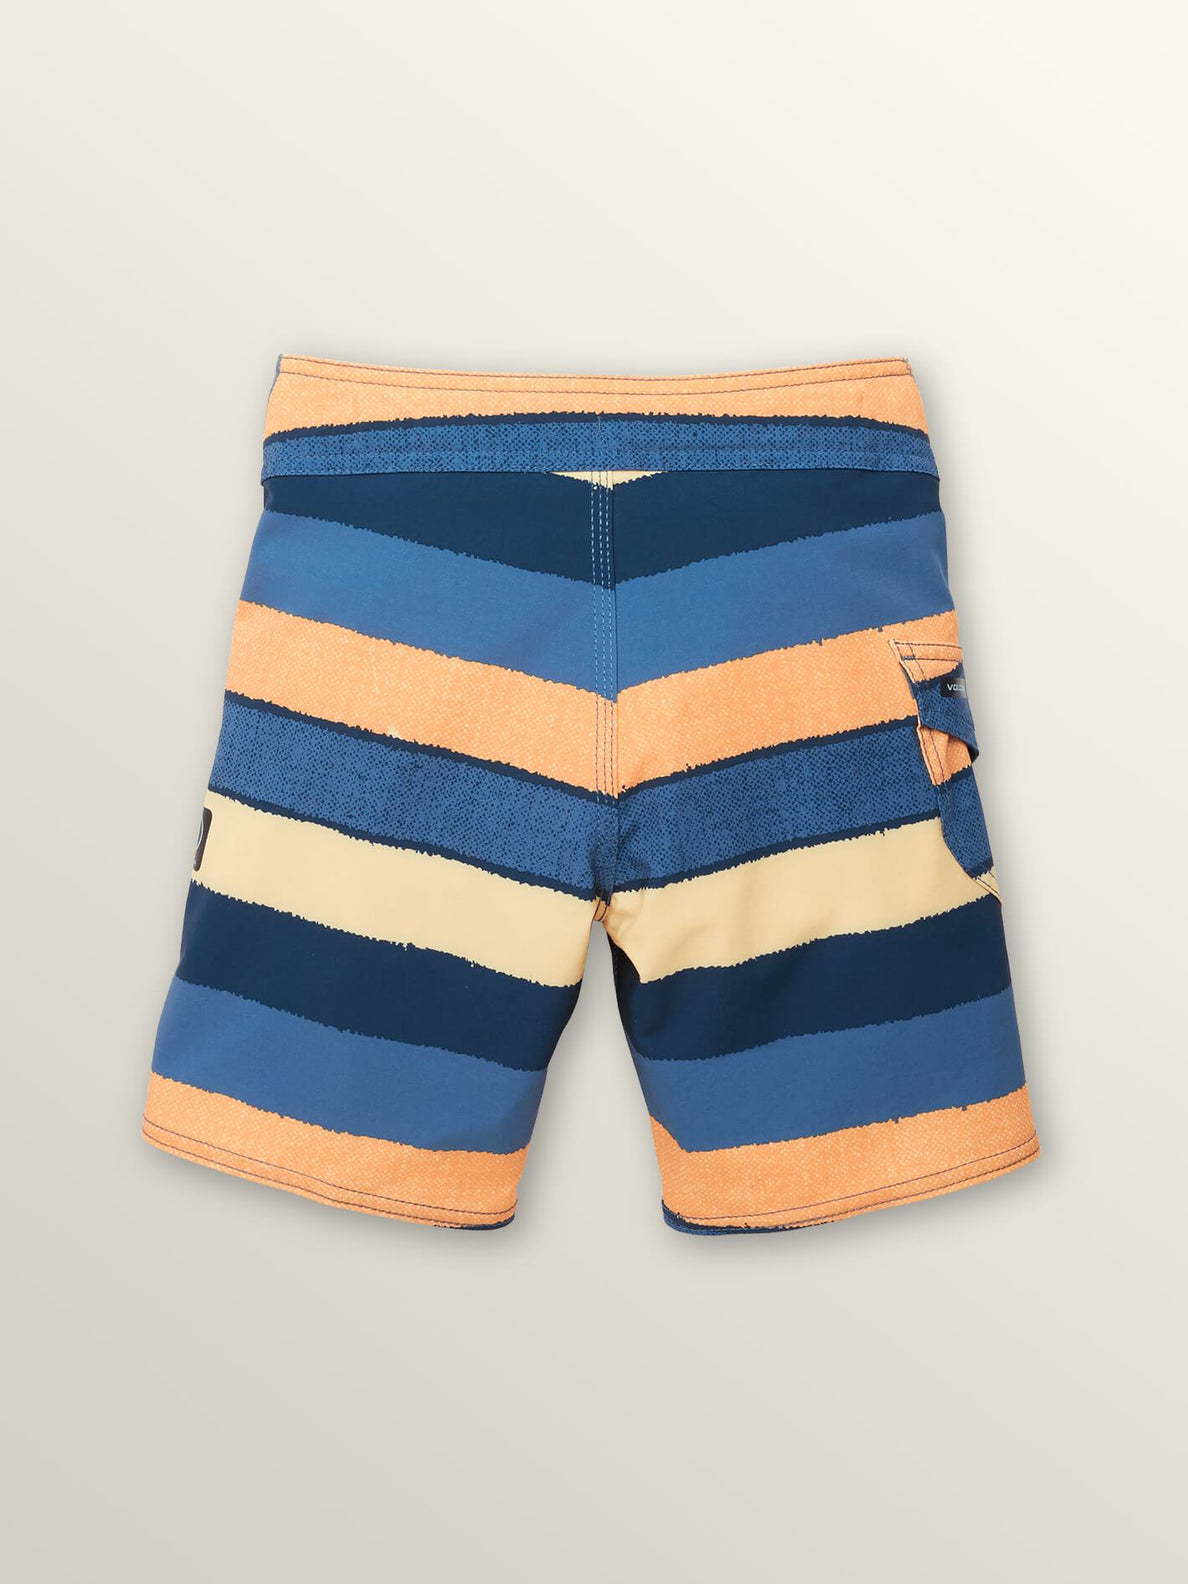 Little Boys Magnetic Liney Mod Boardshorts In Sunburst, Back View